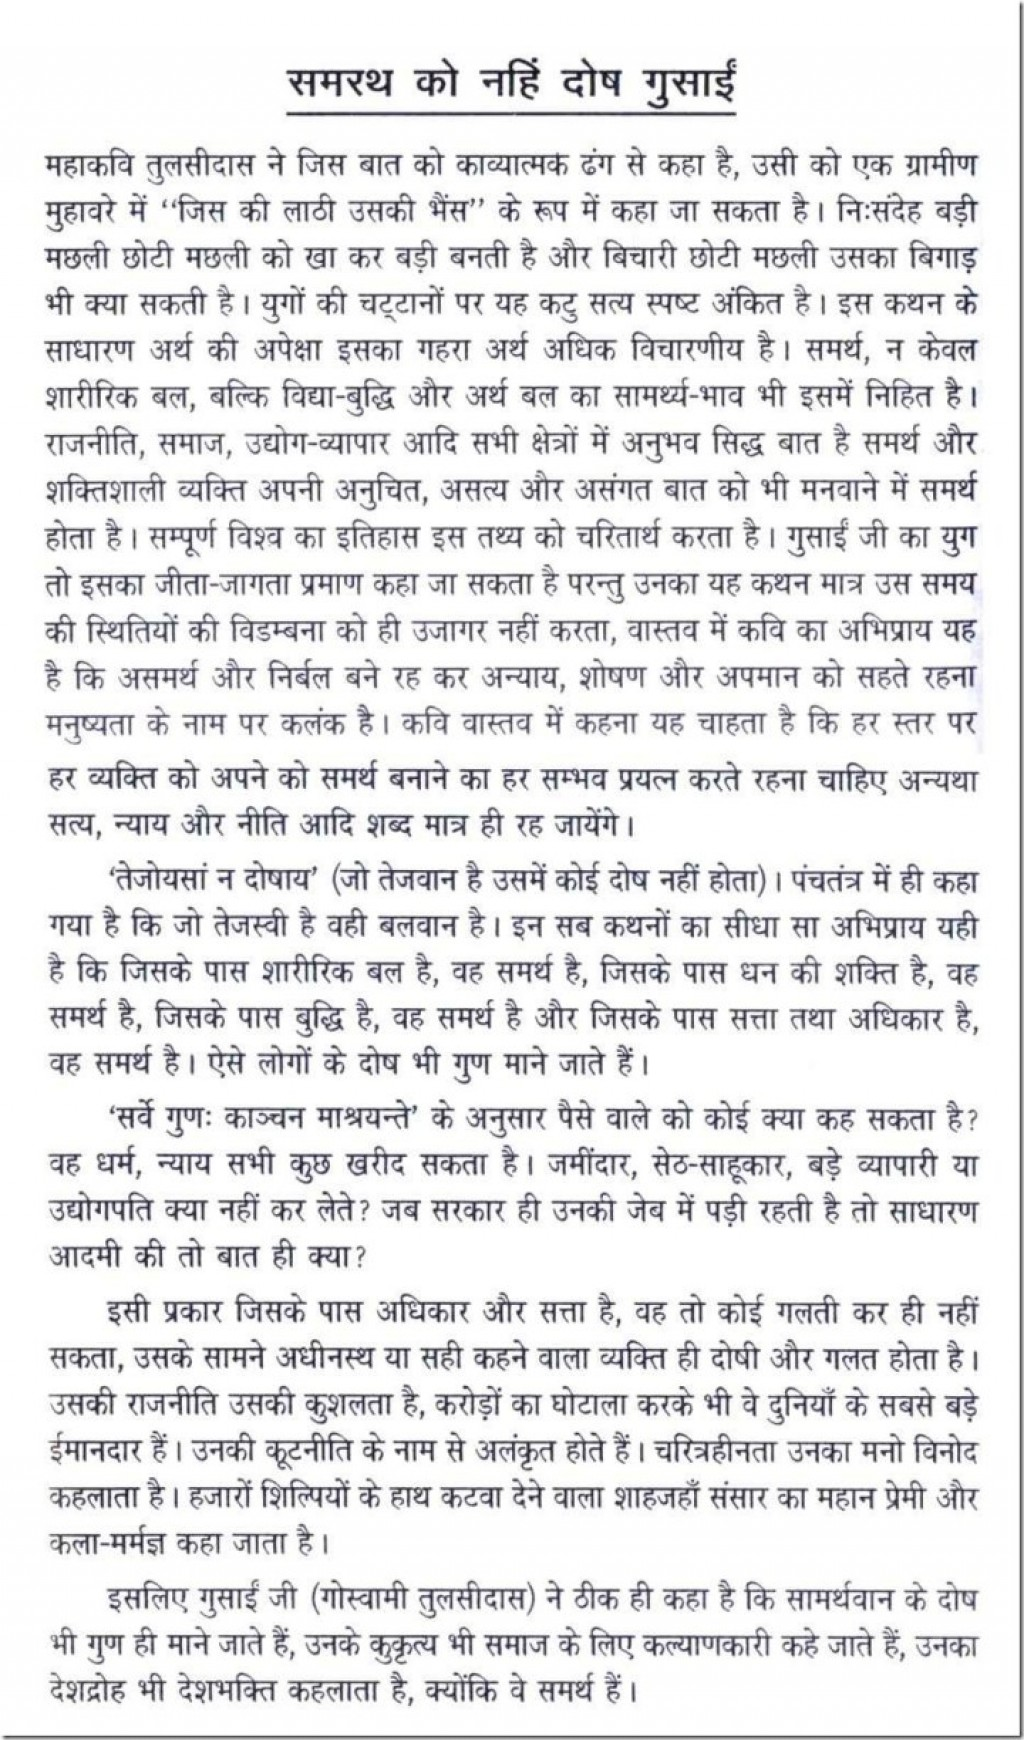 007 Good Habits Essay In Hindi Example Hh0055 Thumbresize7202c1224 Exceptional And Bad Healthy Eating Large